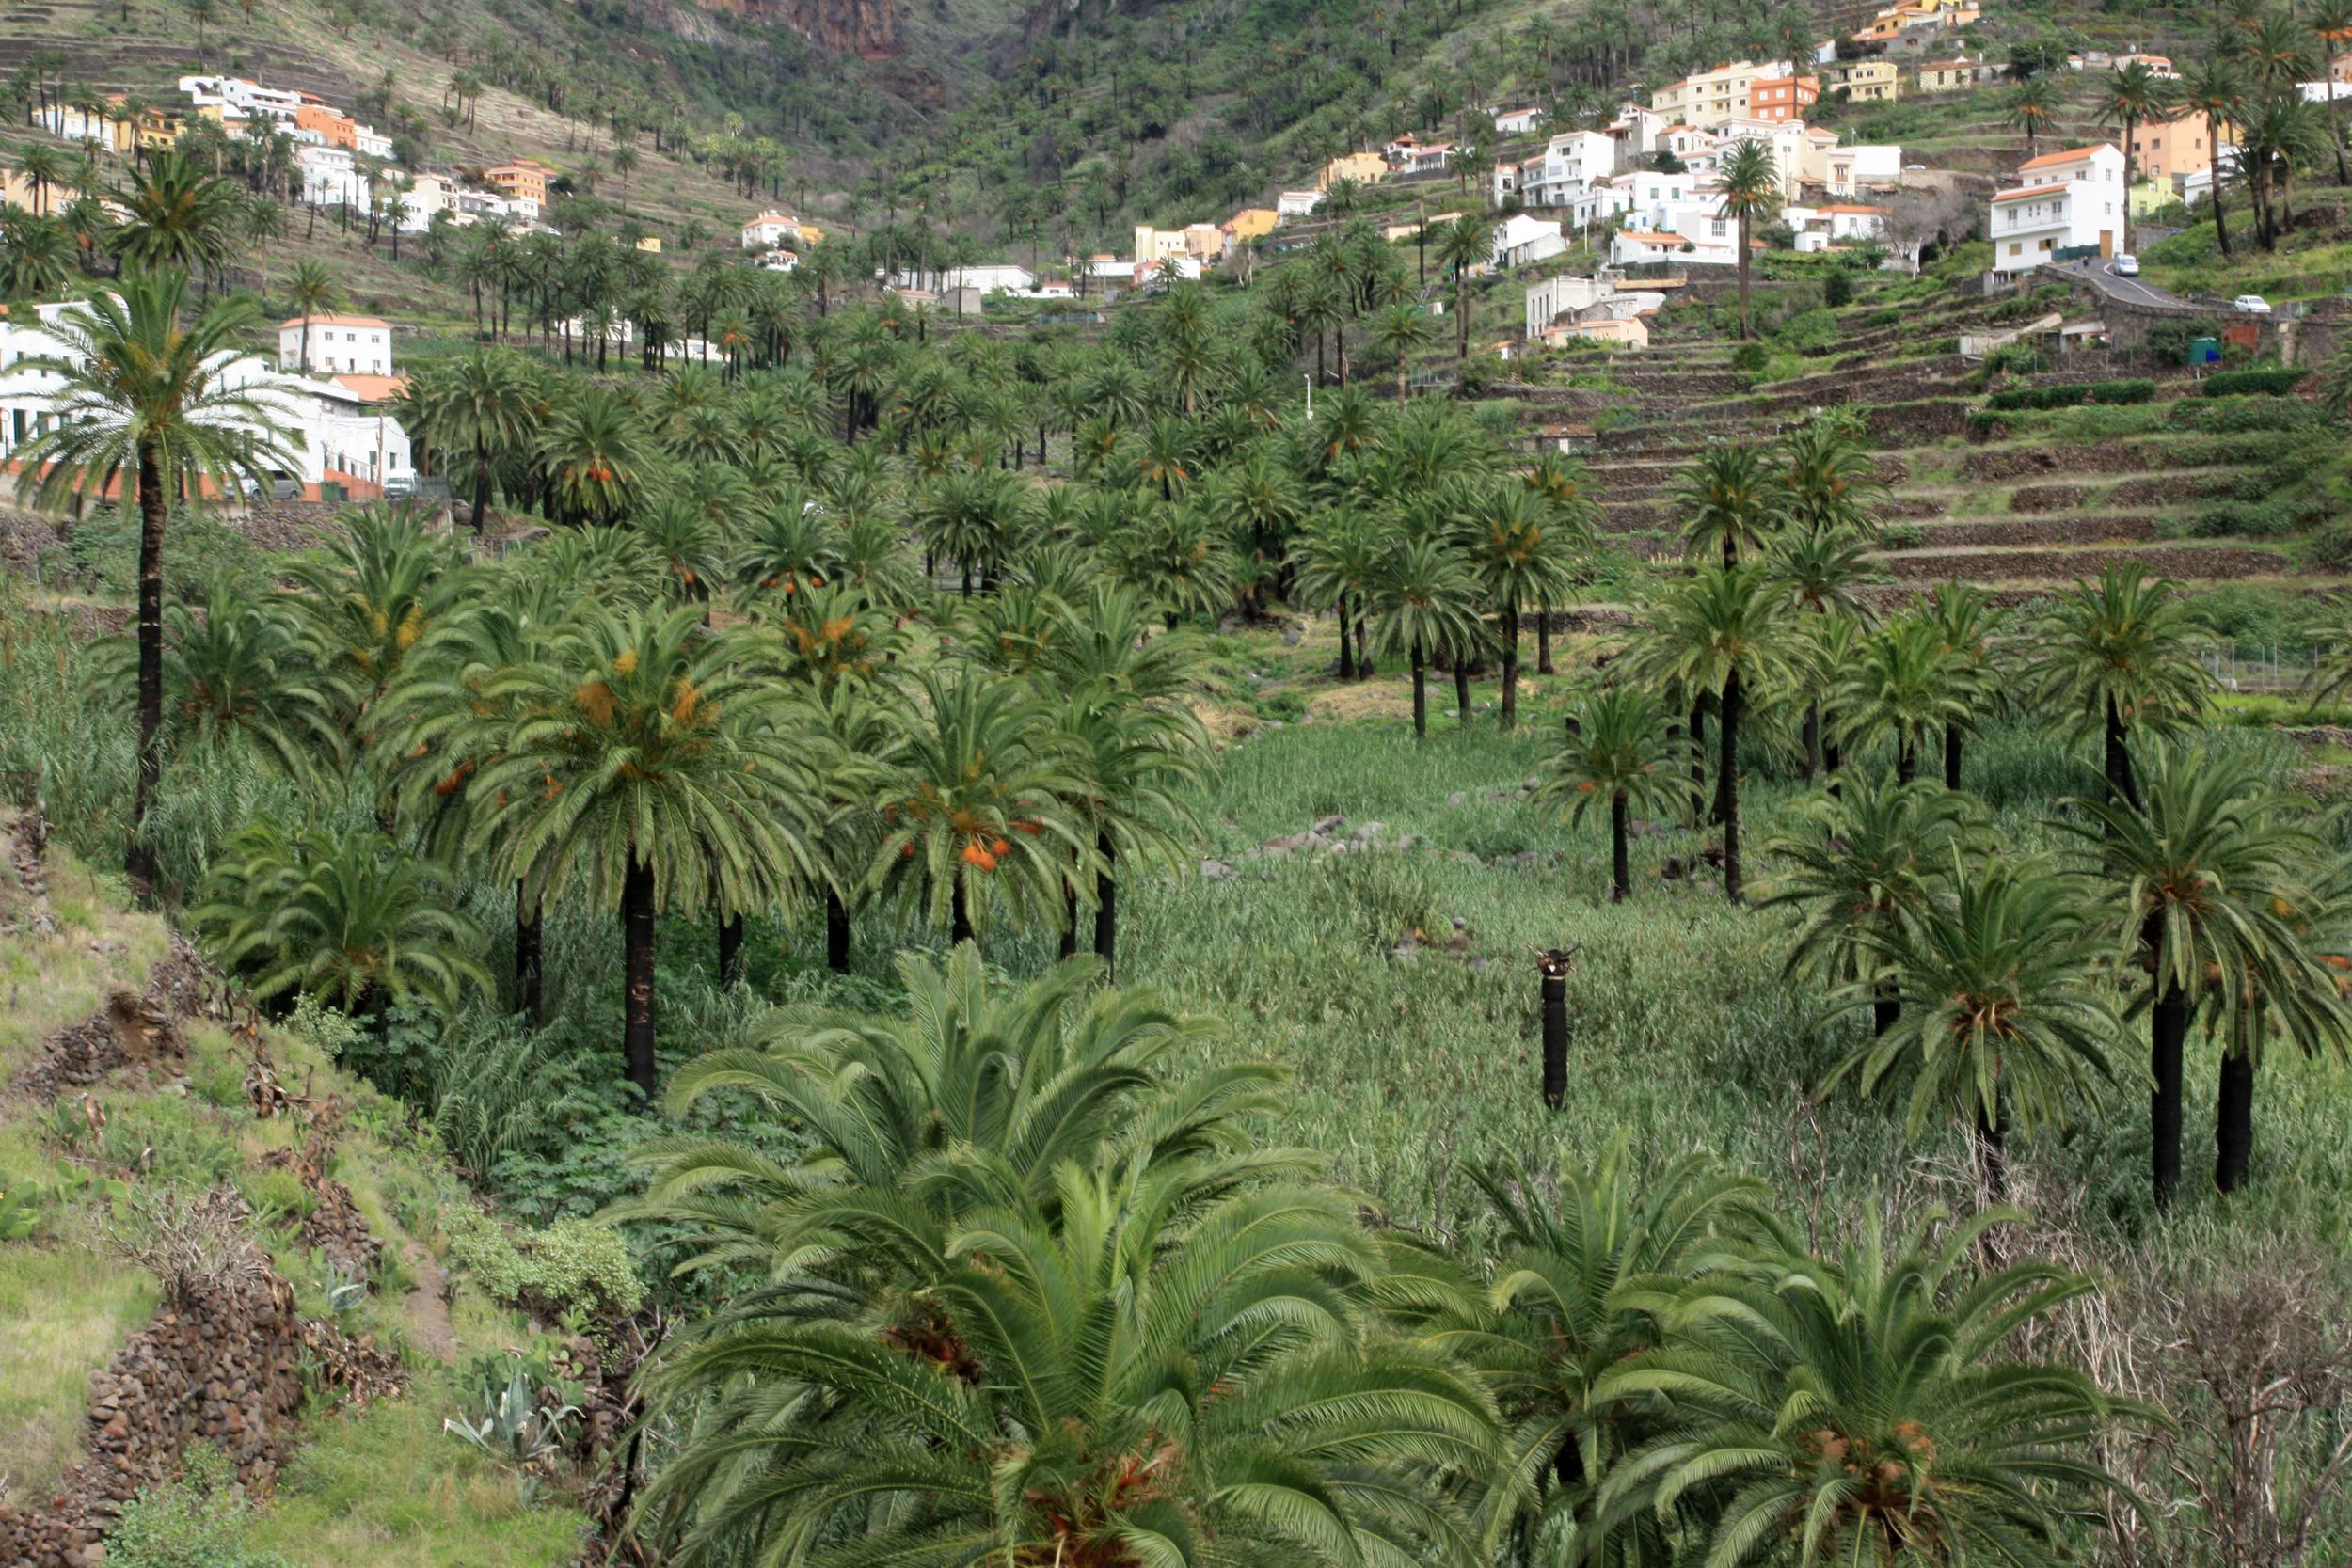 A number of horticultural staples (especially in California) are Canary Island endemics or natives. Here is the endemic  Phoenix canariensis  (Canary Island date palm) on the island of La Gomera.